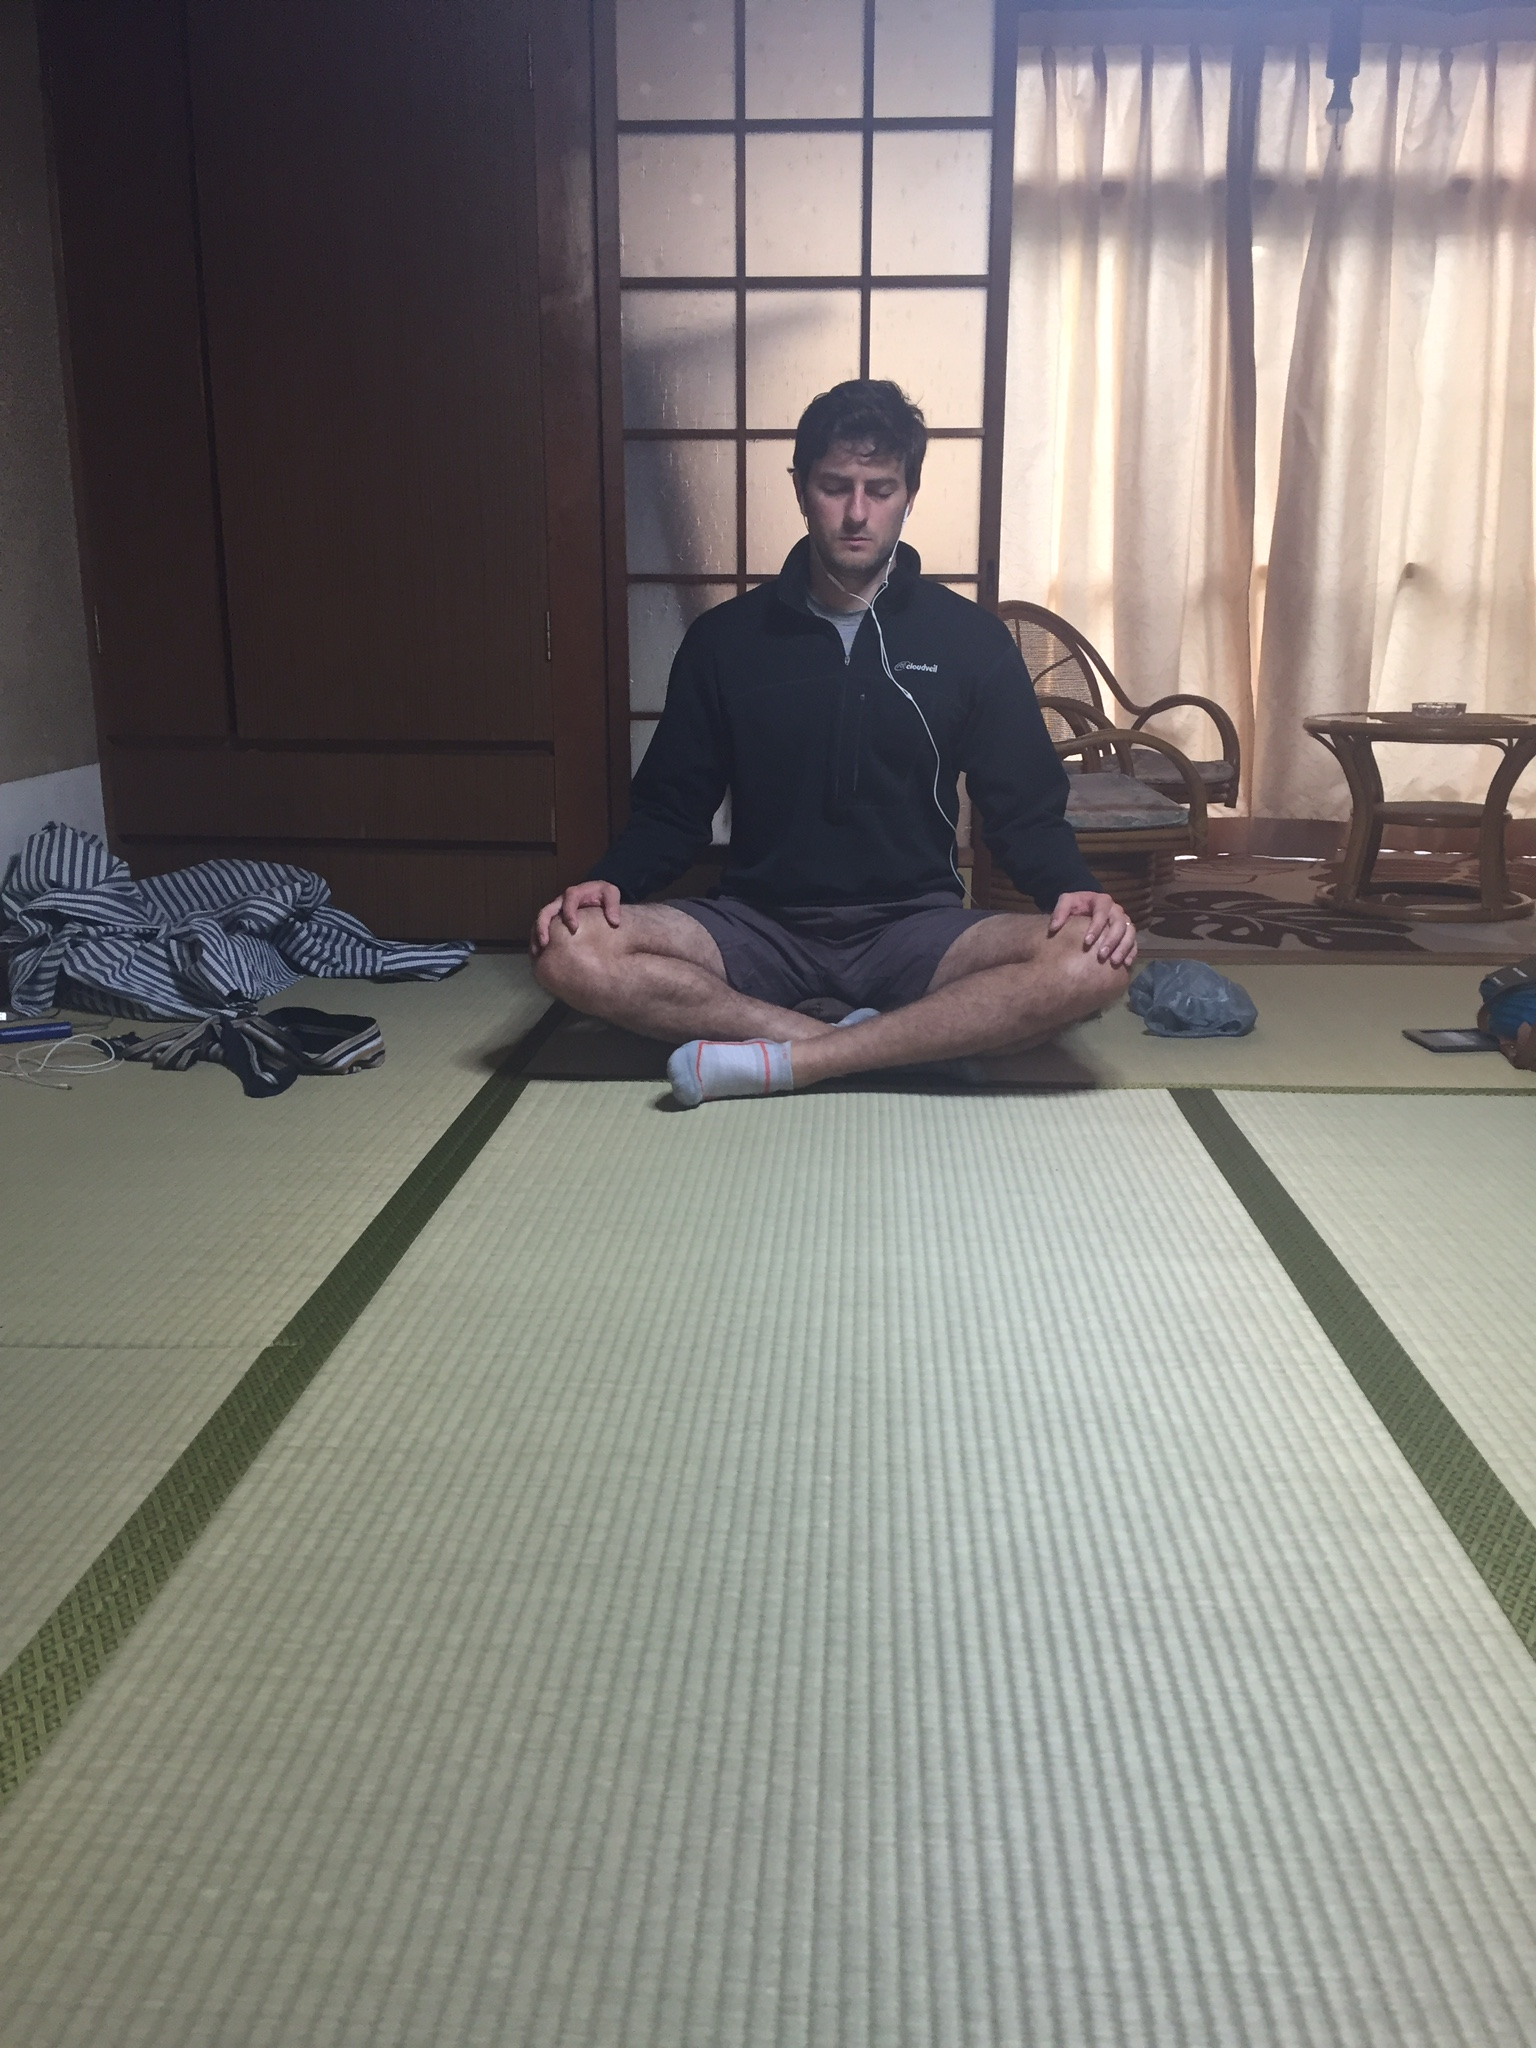 Meditation is hard when you can barely cross your legs